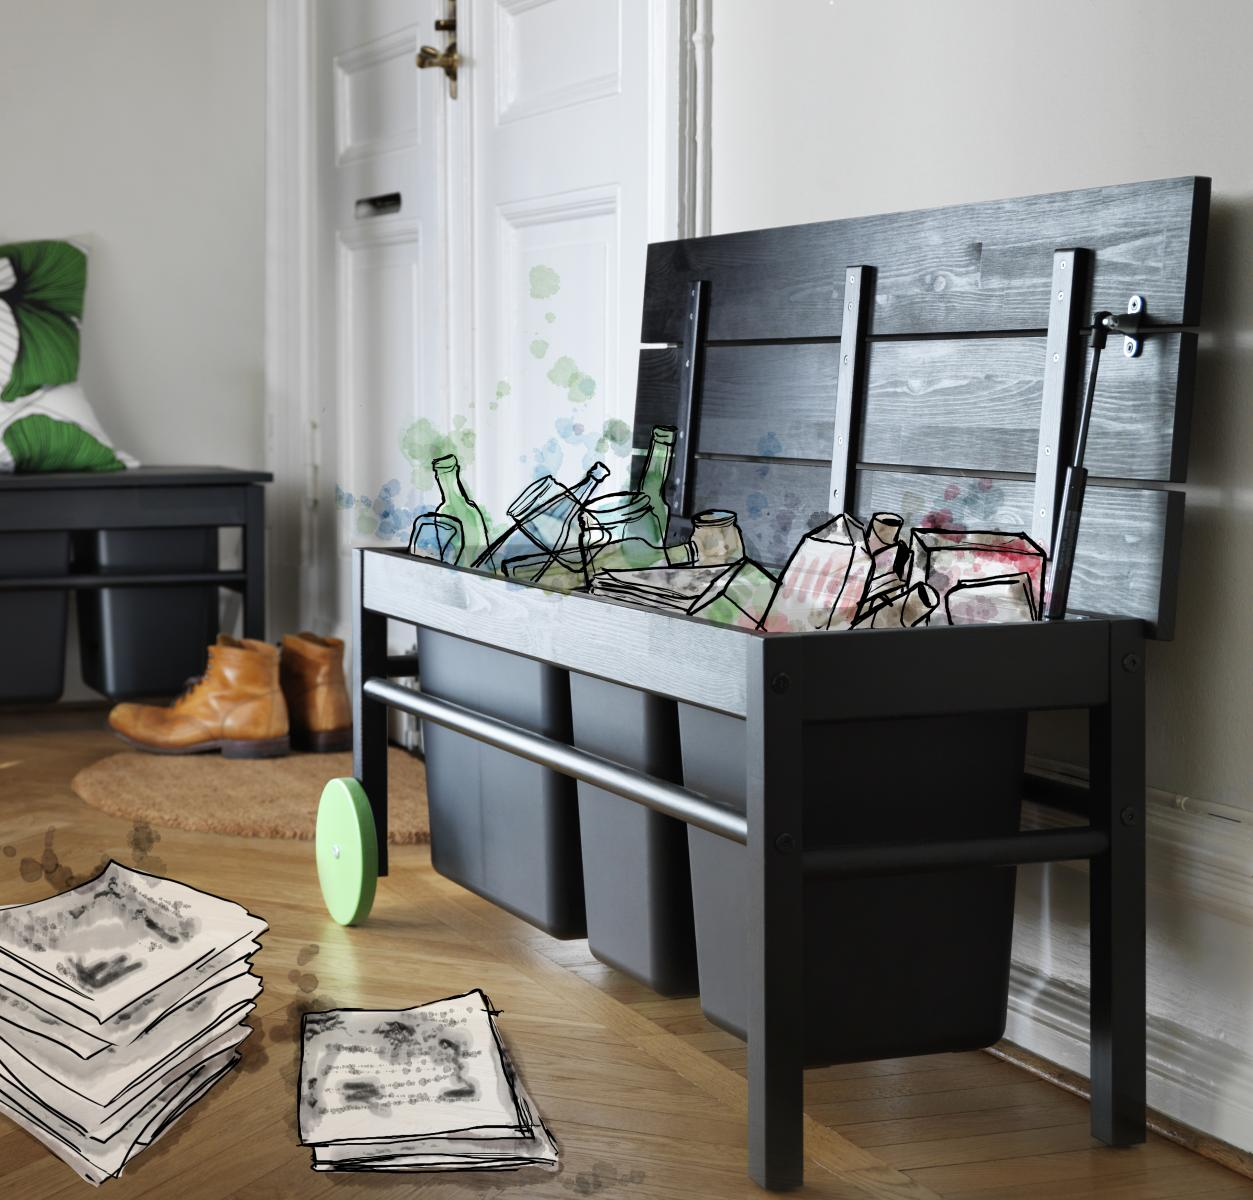 green way of life avec ikea madame d core. Black Bedroom Furniture Sets. Home Design Ideas